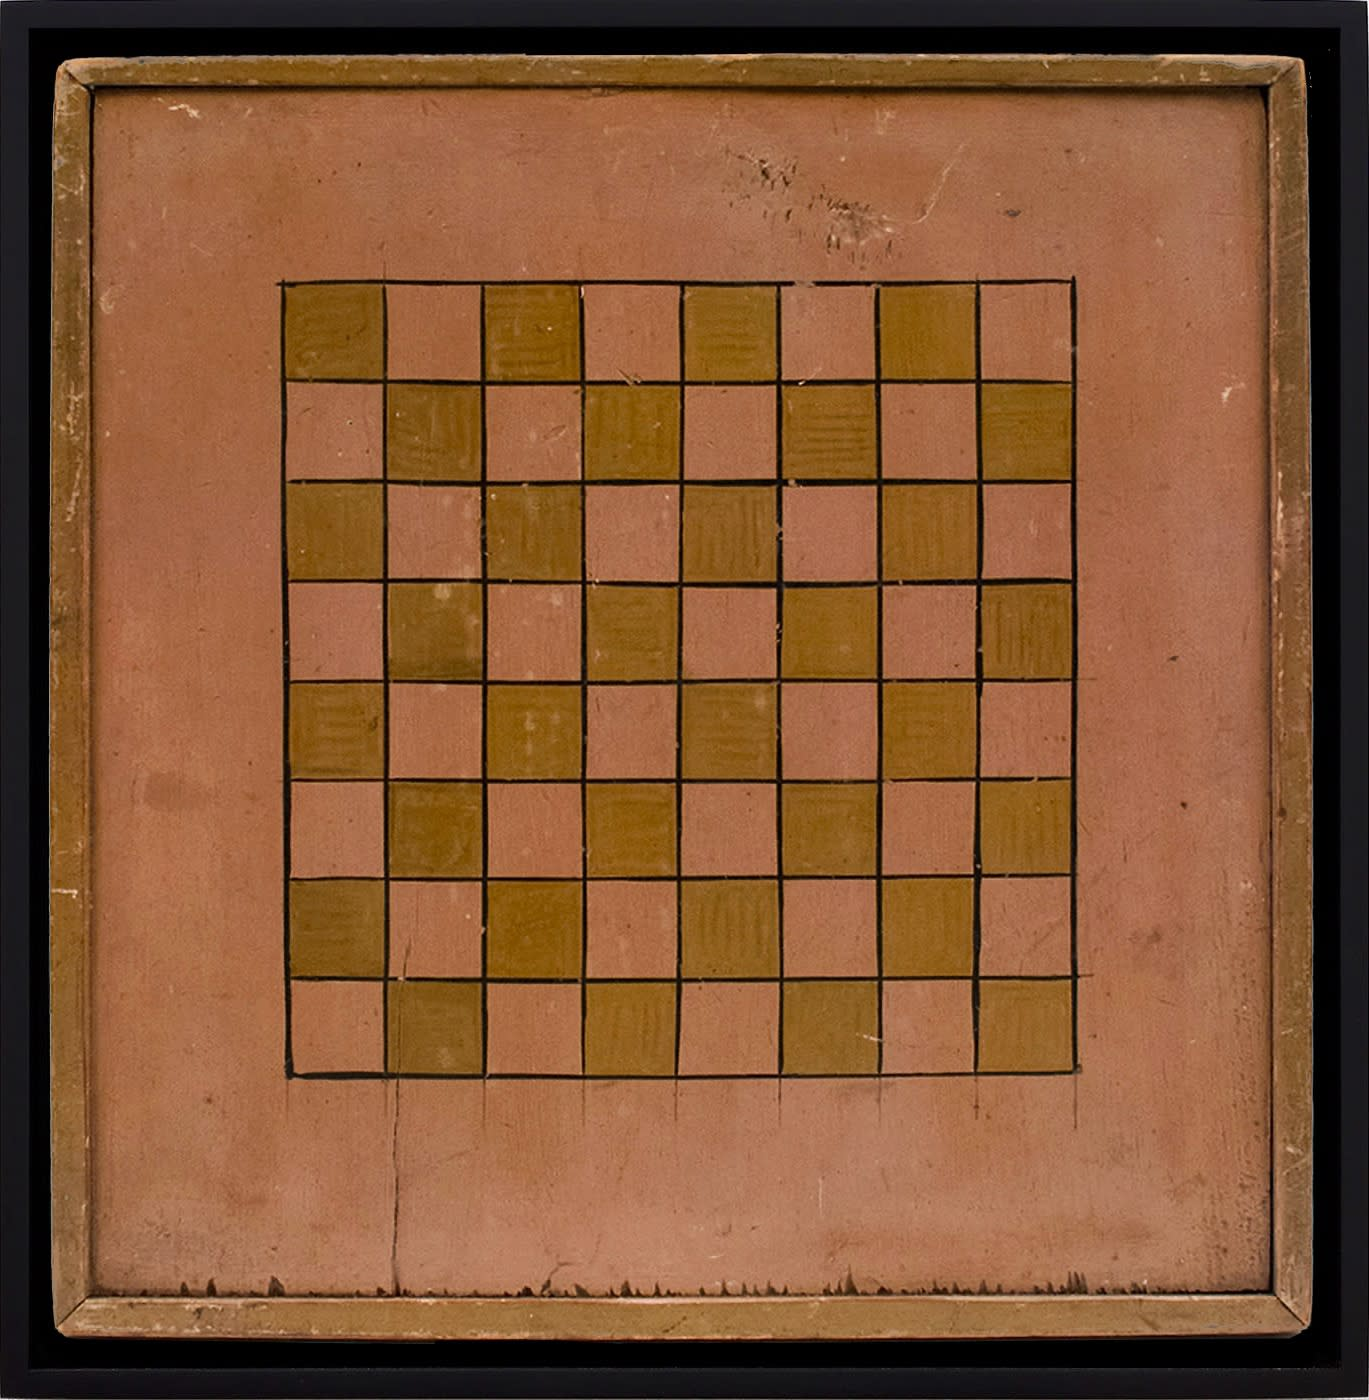 CHECKERS GAME BOARD, LATE 19TH CENTURY Oil based enamel on poplar wood 16 1/4 x 16 in. (AU 244)